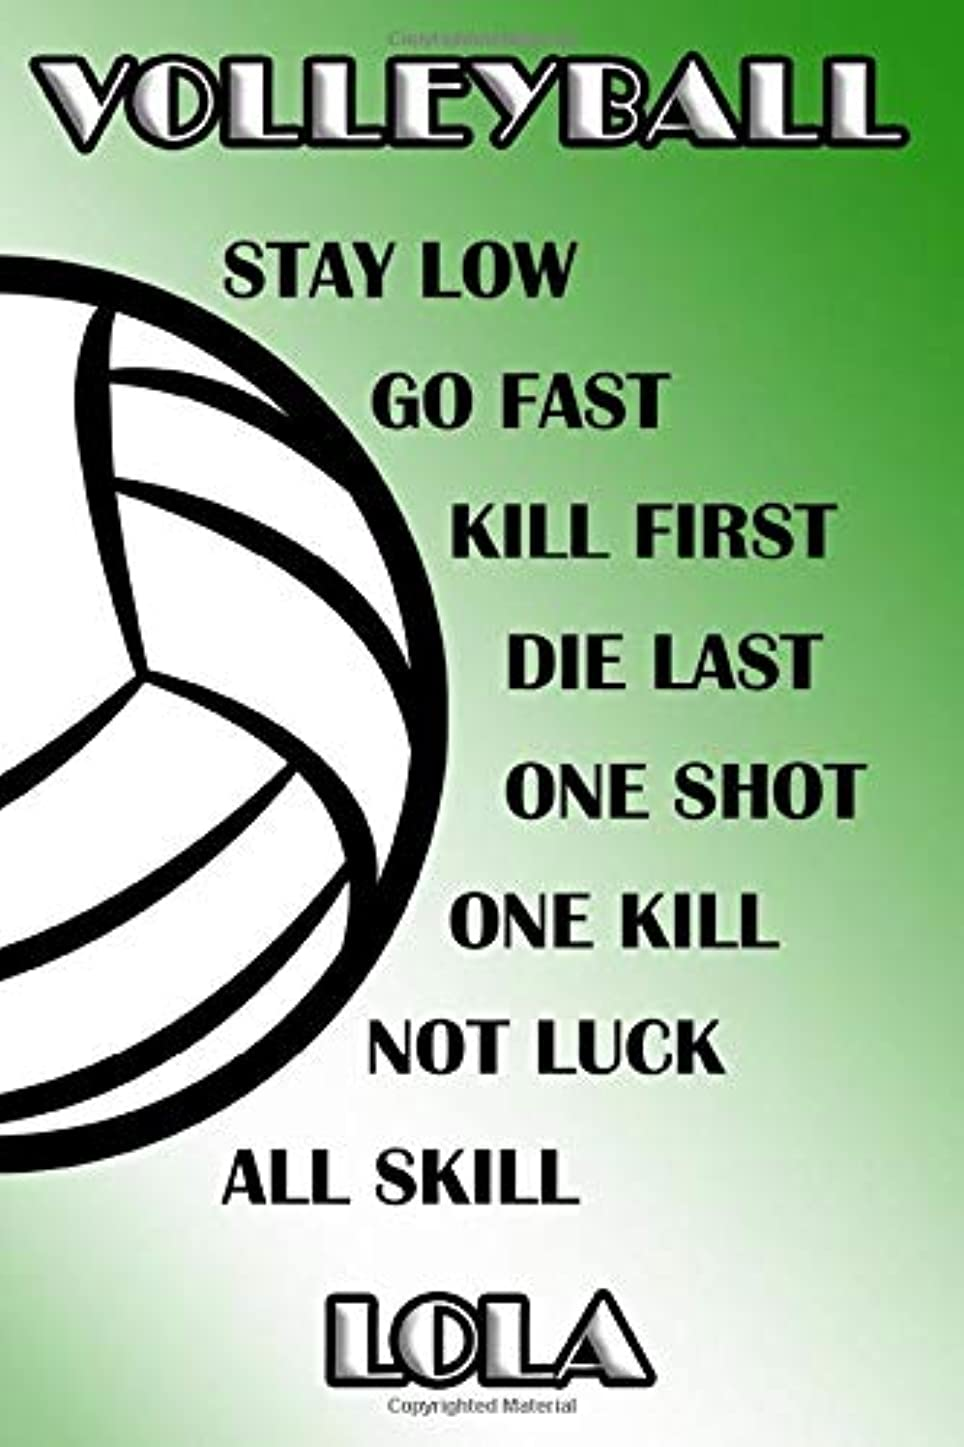 効率ヘルメットバイオリニストVolleyball Stay Low Go Fast Kill First Die Last One Shot One Kill Not Luck All Skill Lola: College Ruled | Composition Book | Green and White School Colors